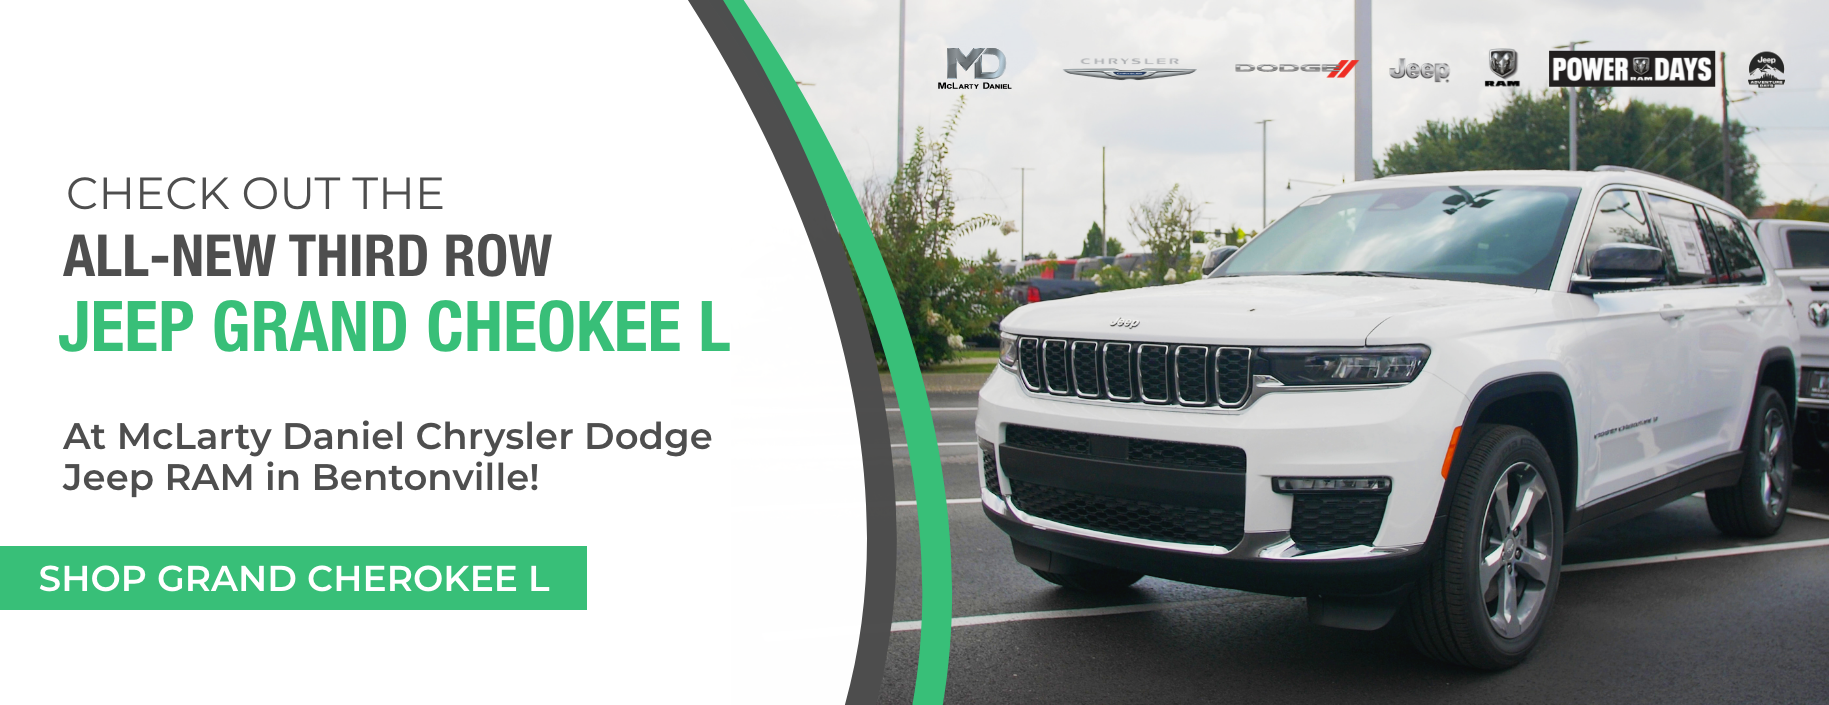 Check out the all-new third row Jeep Grand Cherokee L at McLarty Daniel Chrysler Dodge Jeep RAM in Bentonville!